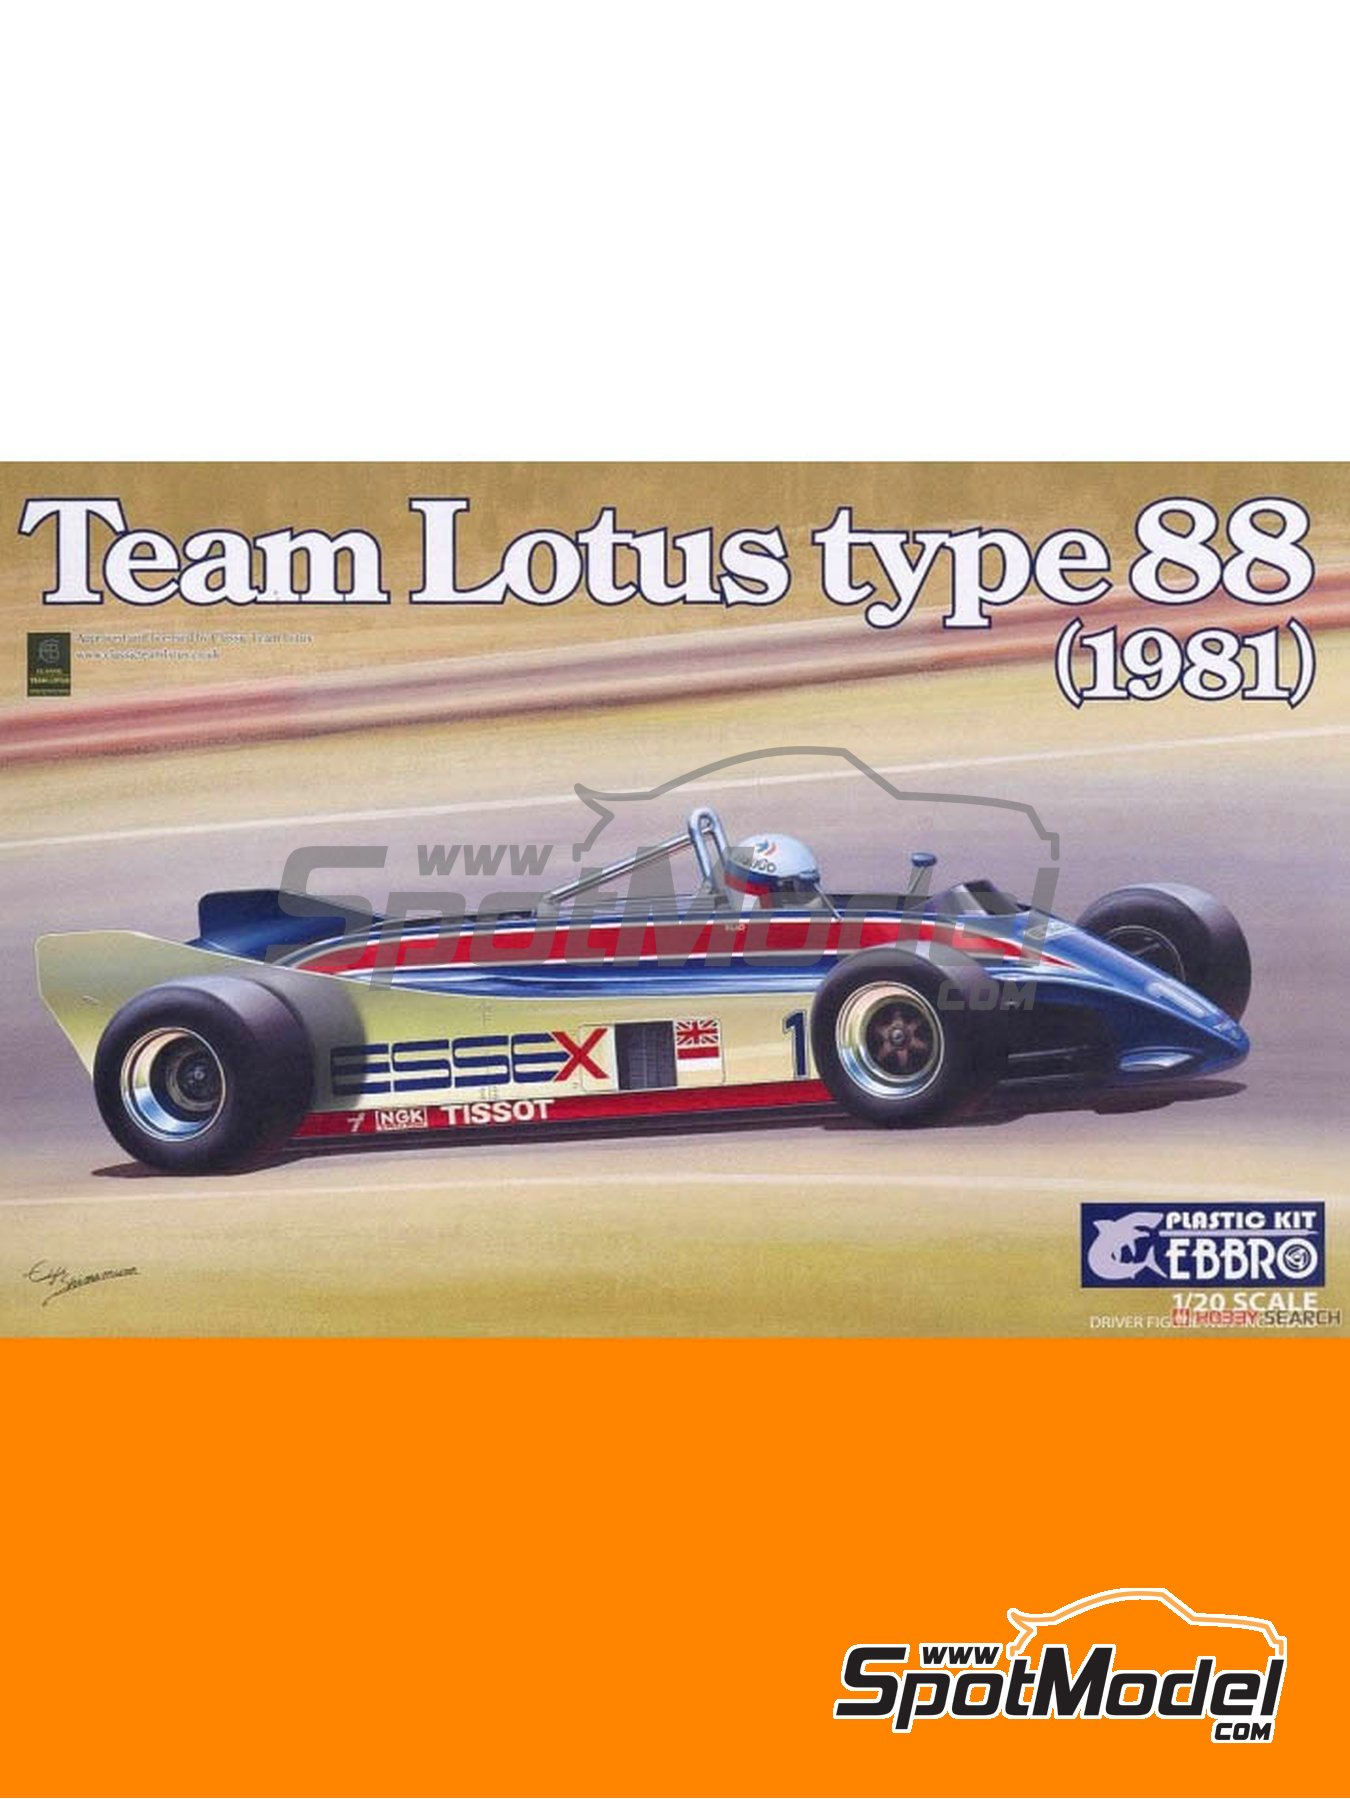 Lotus Ford Type 88 - Gran Premio de USA West Long Beach 1981 | Maqueta de coche en escala 1/20 fabricado por Ebbro (ref. EBR20011) image